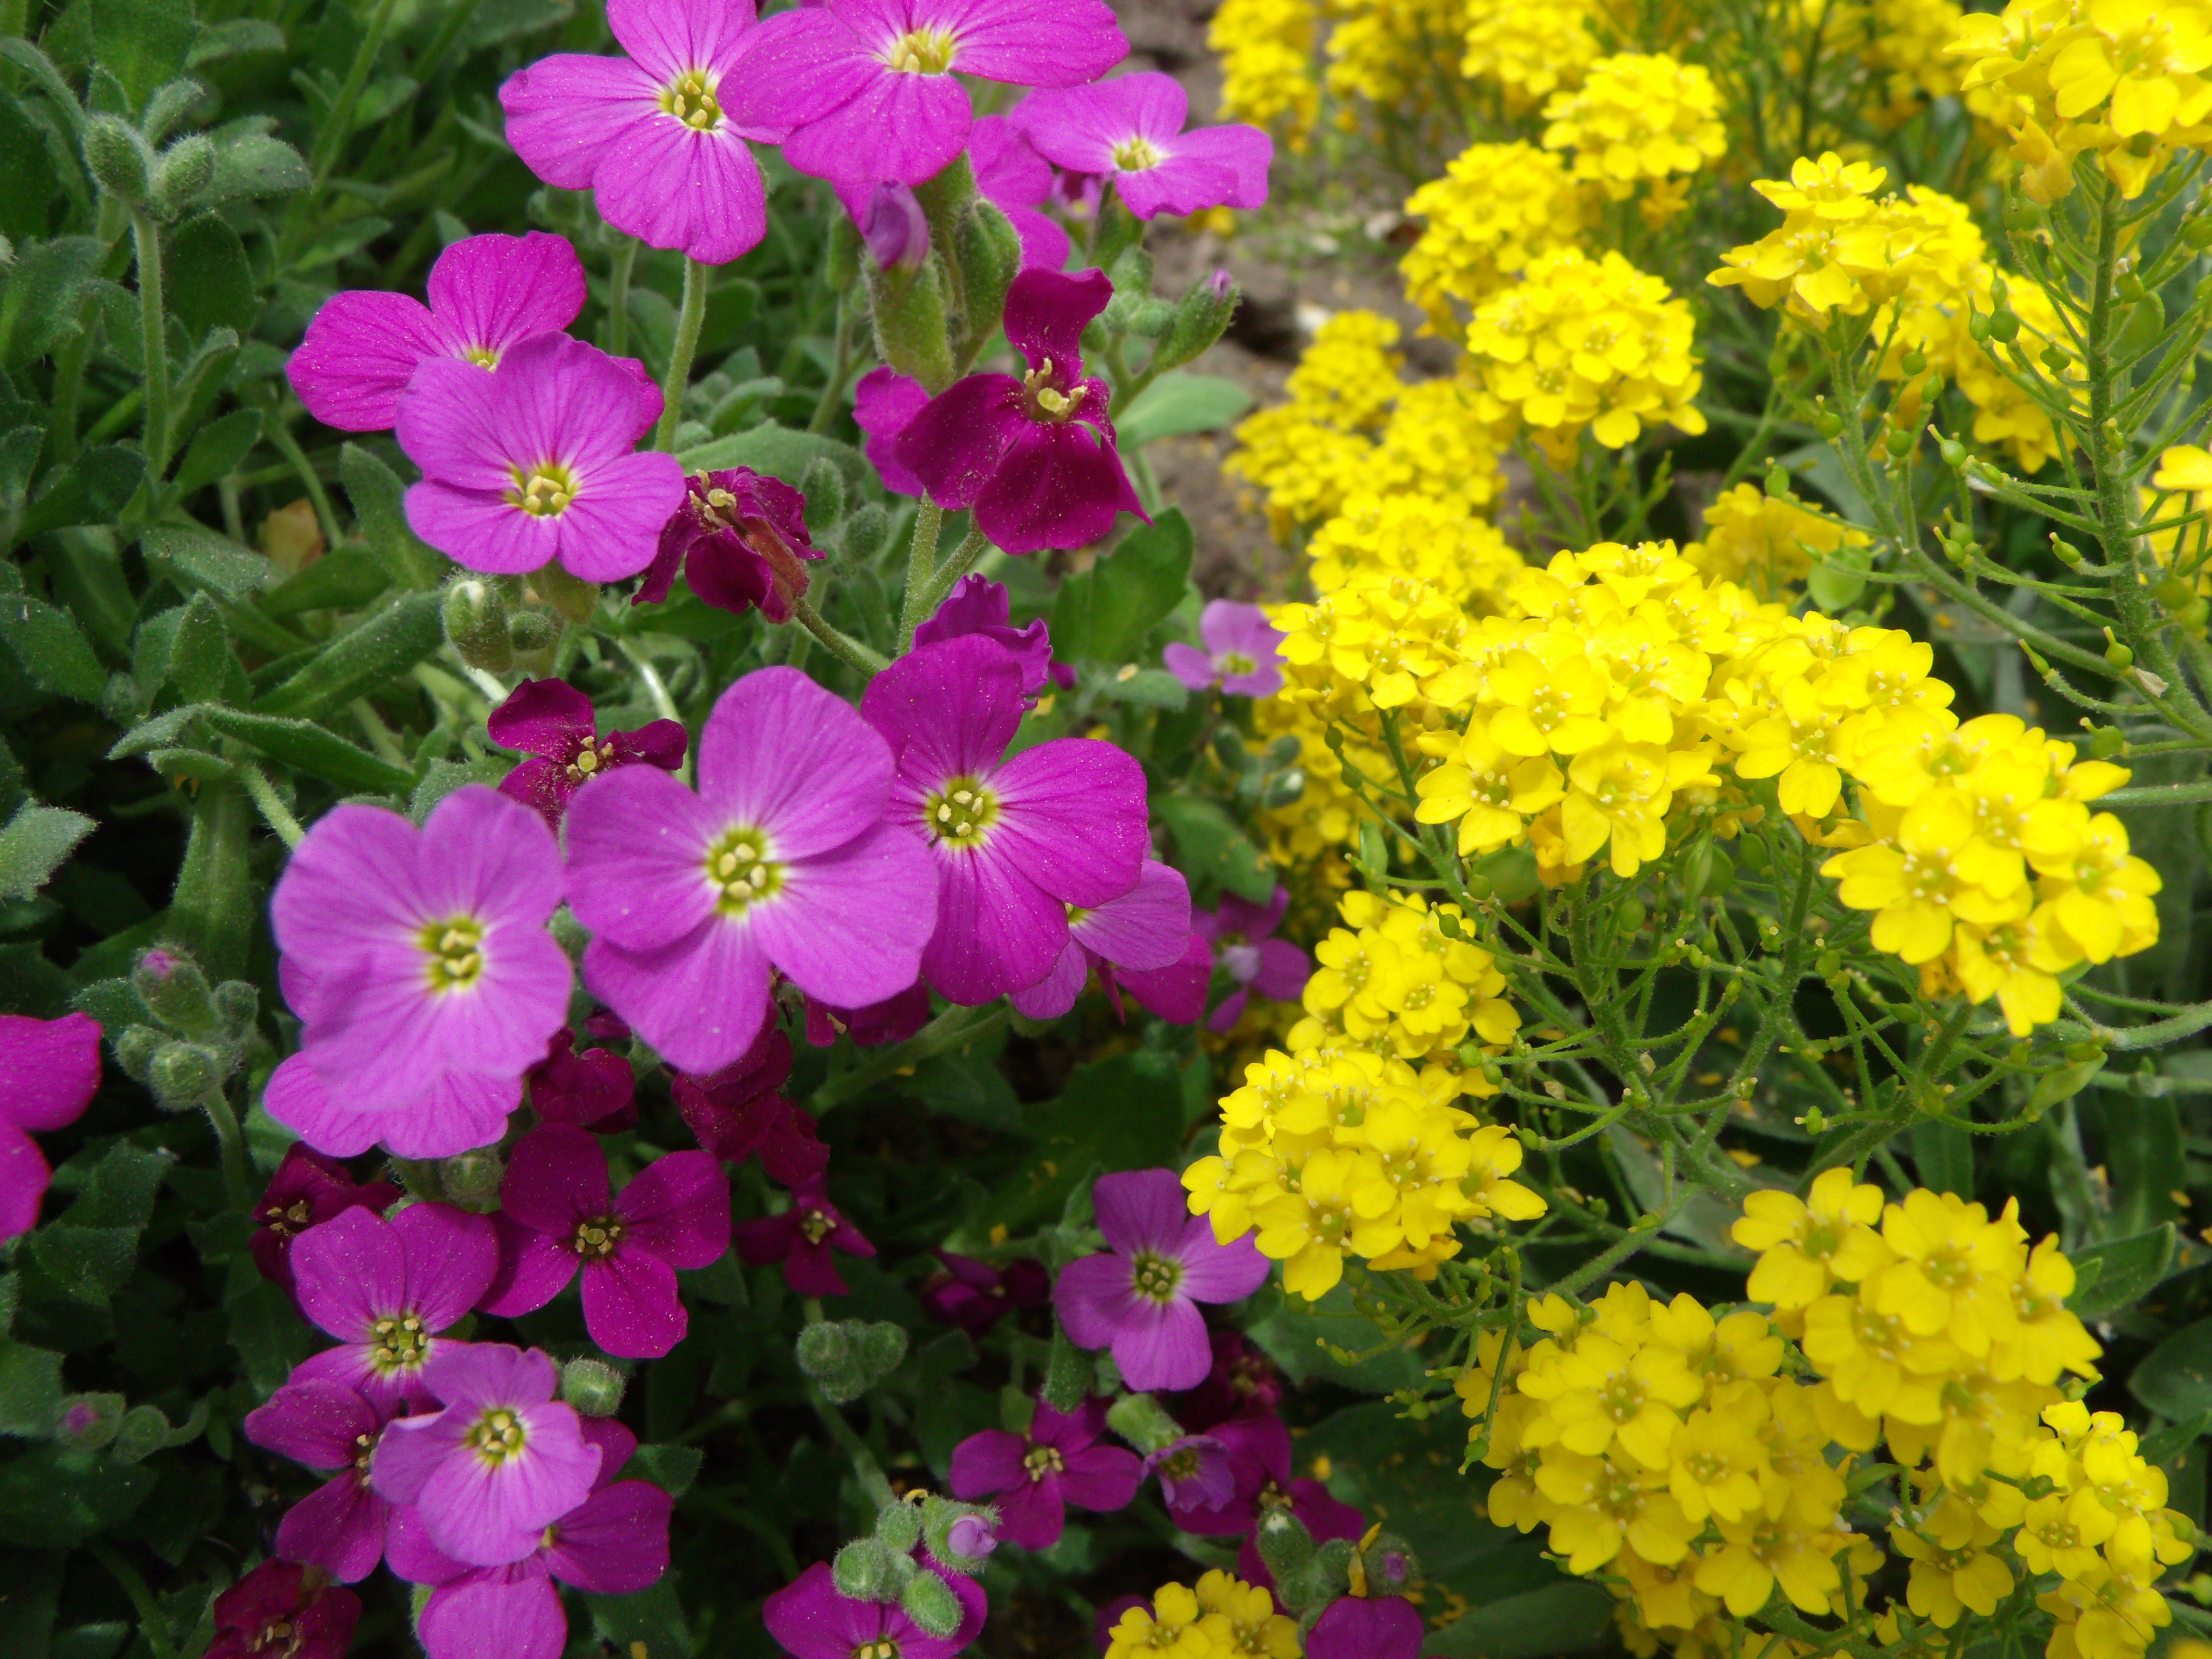 purple and yellow flowers | Scott's Place...Images and Words